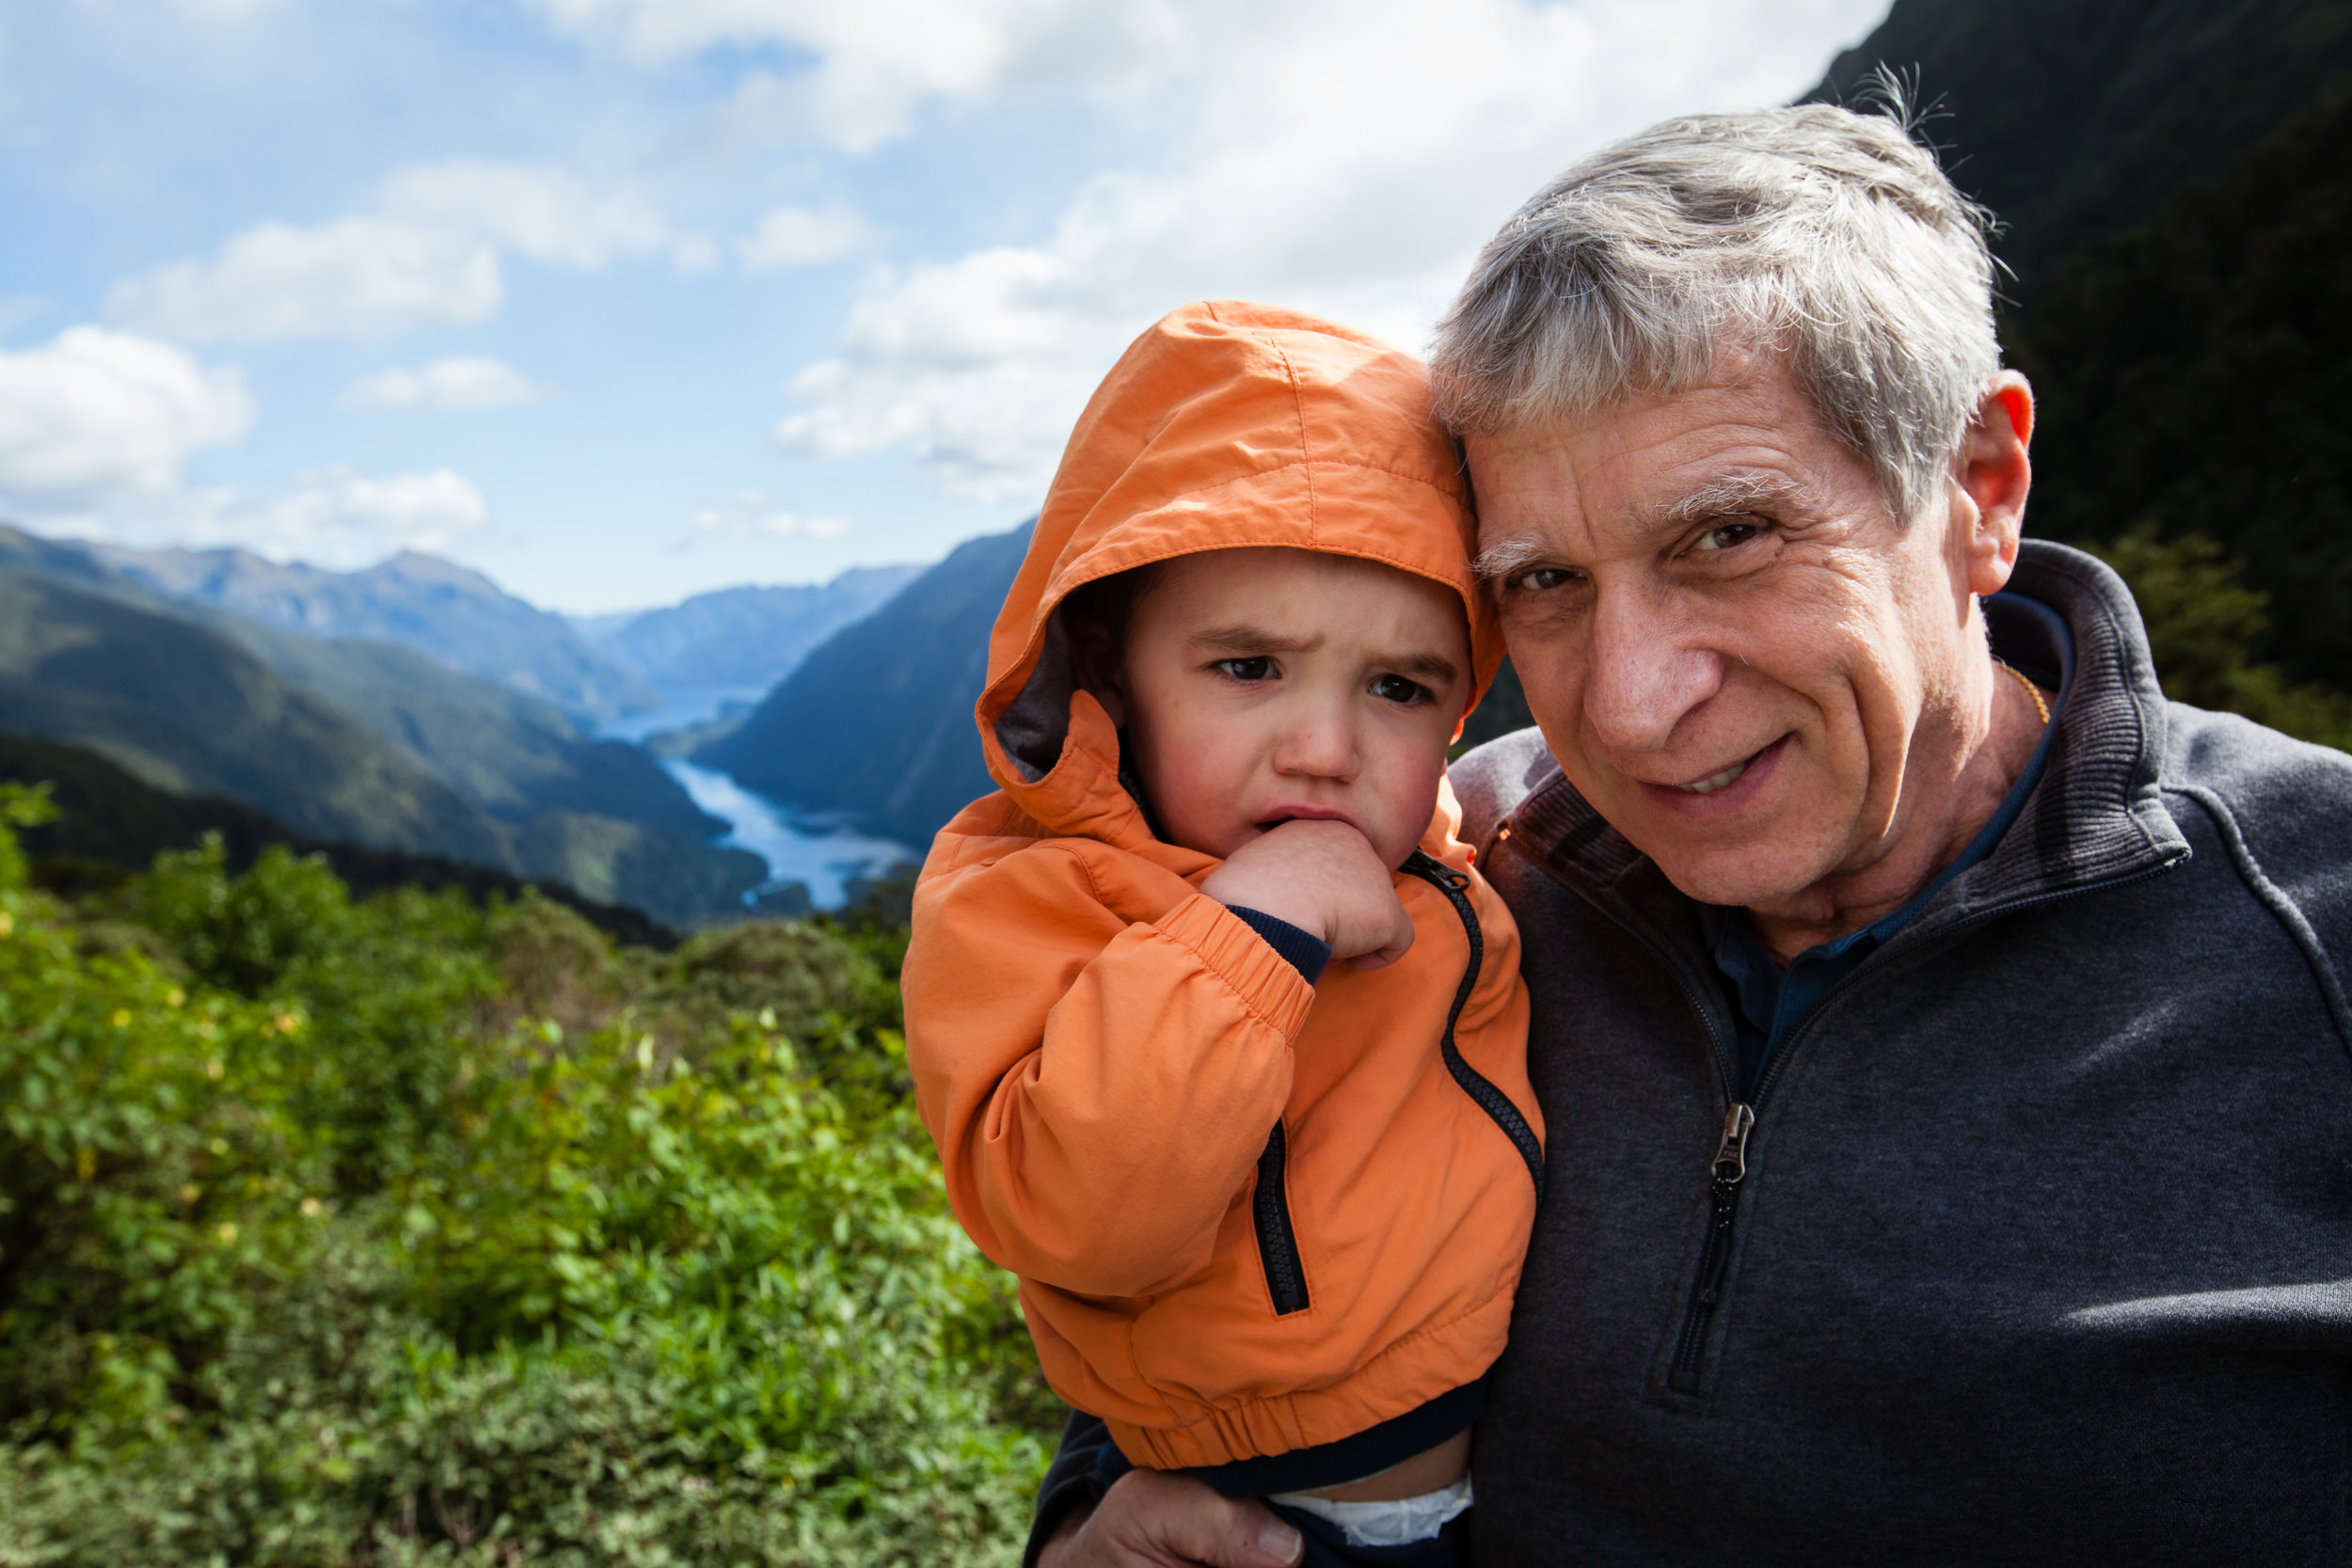 Checking out the view of Doubtful Sound with Grandpa. No smiles here, but still having a good time!